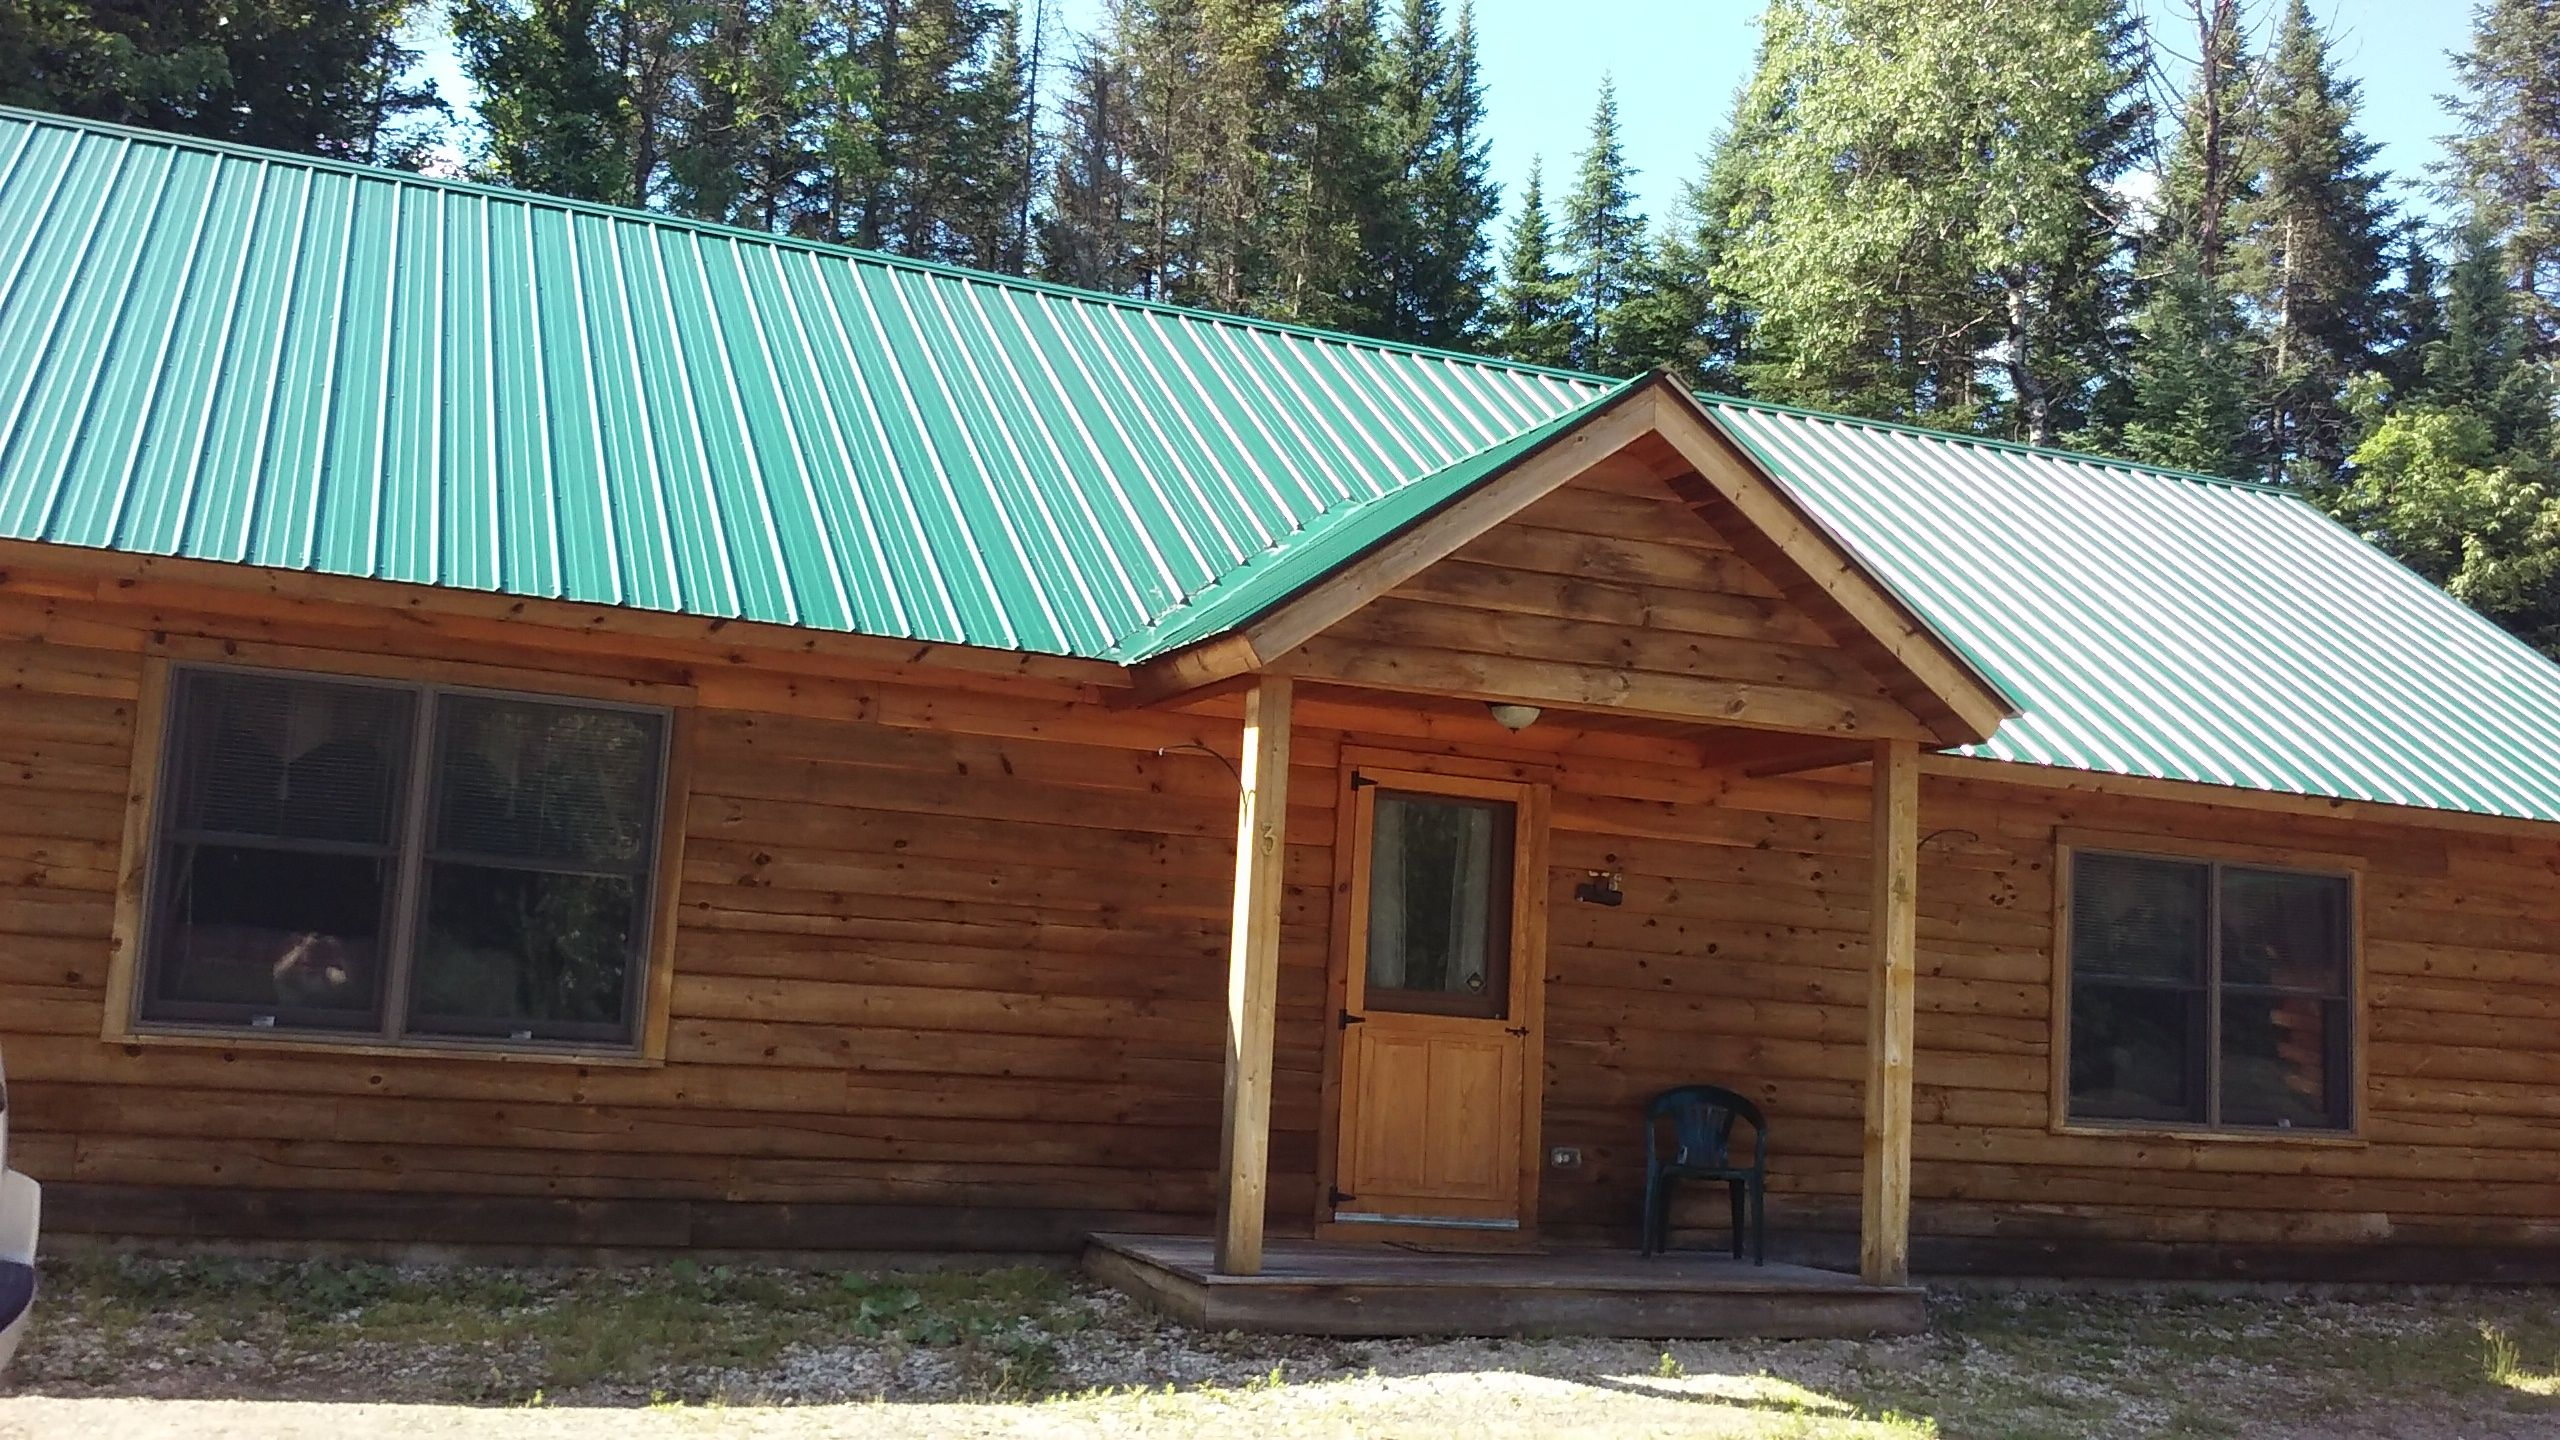 x rentals vacation com rental pinetop mountain arizona for white vermont rent az cabin images cabins